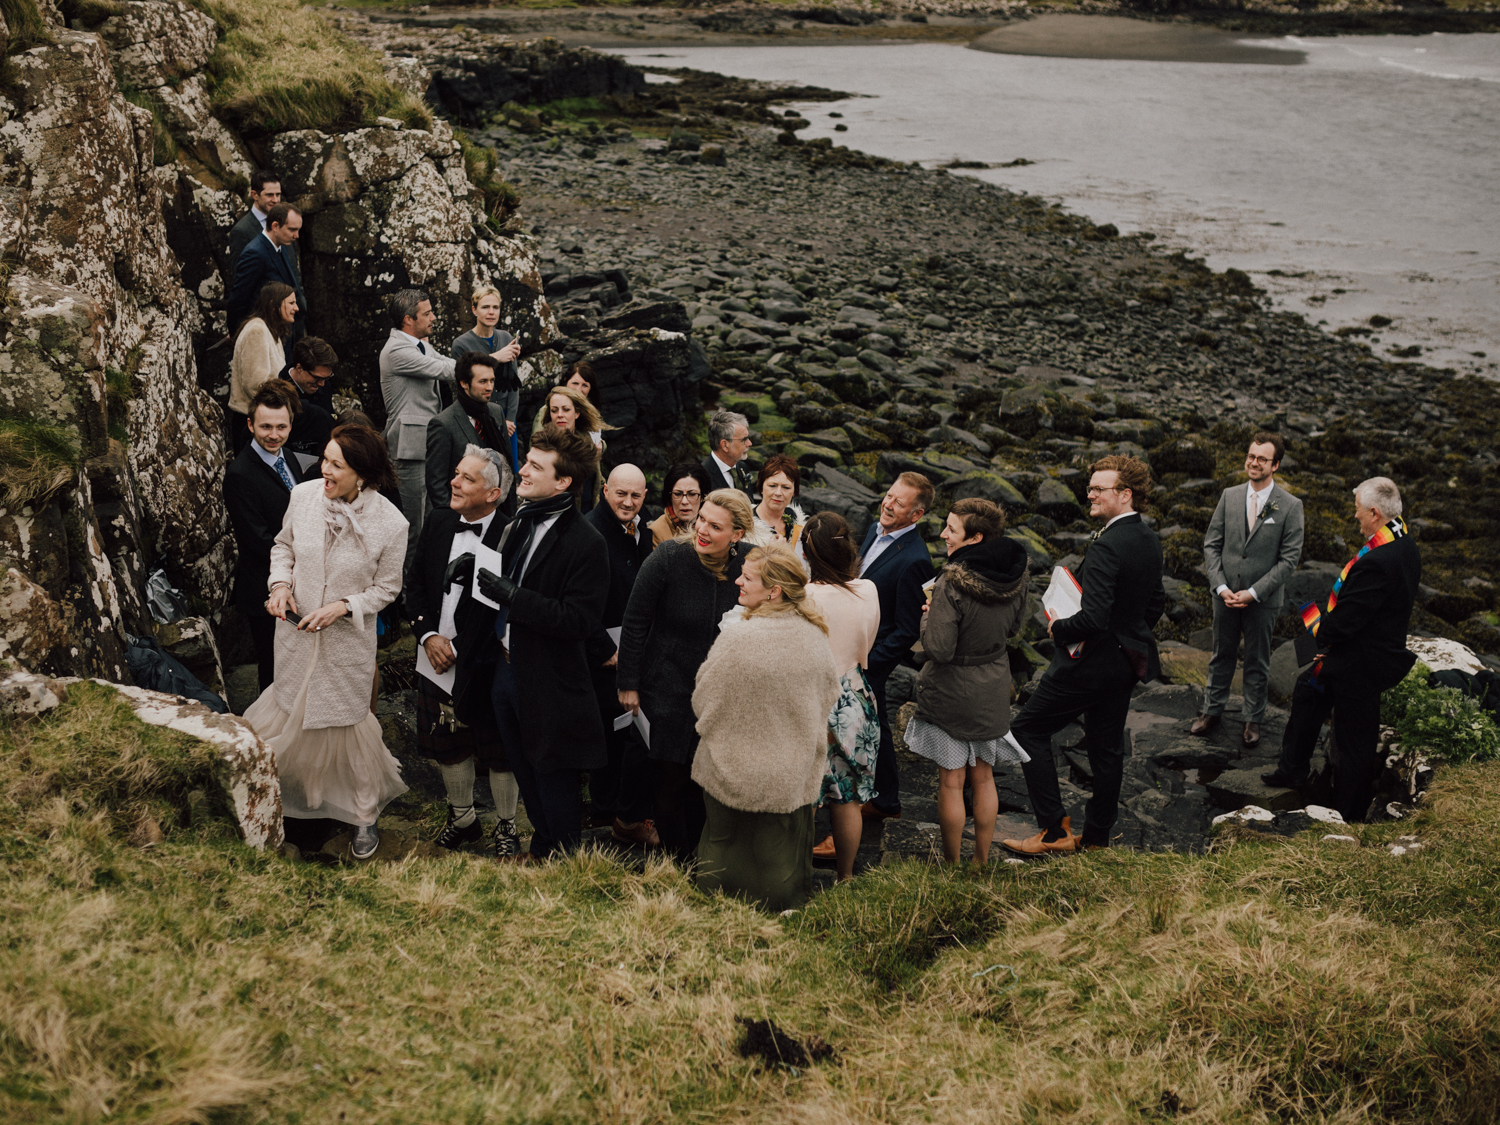 capyture-wedding-photographer-destination-nature-intimate-wedding-isle-of-skye-scotland-236